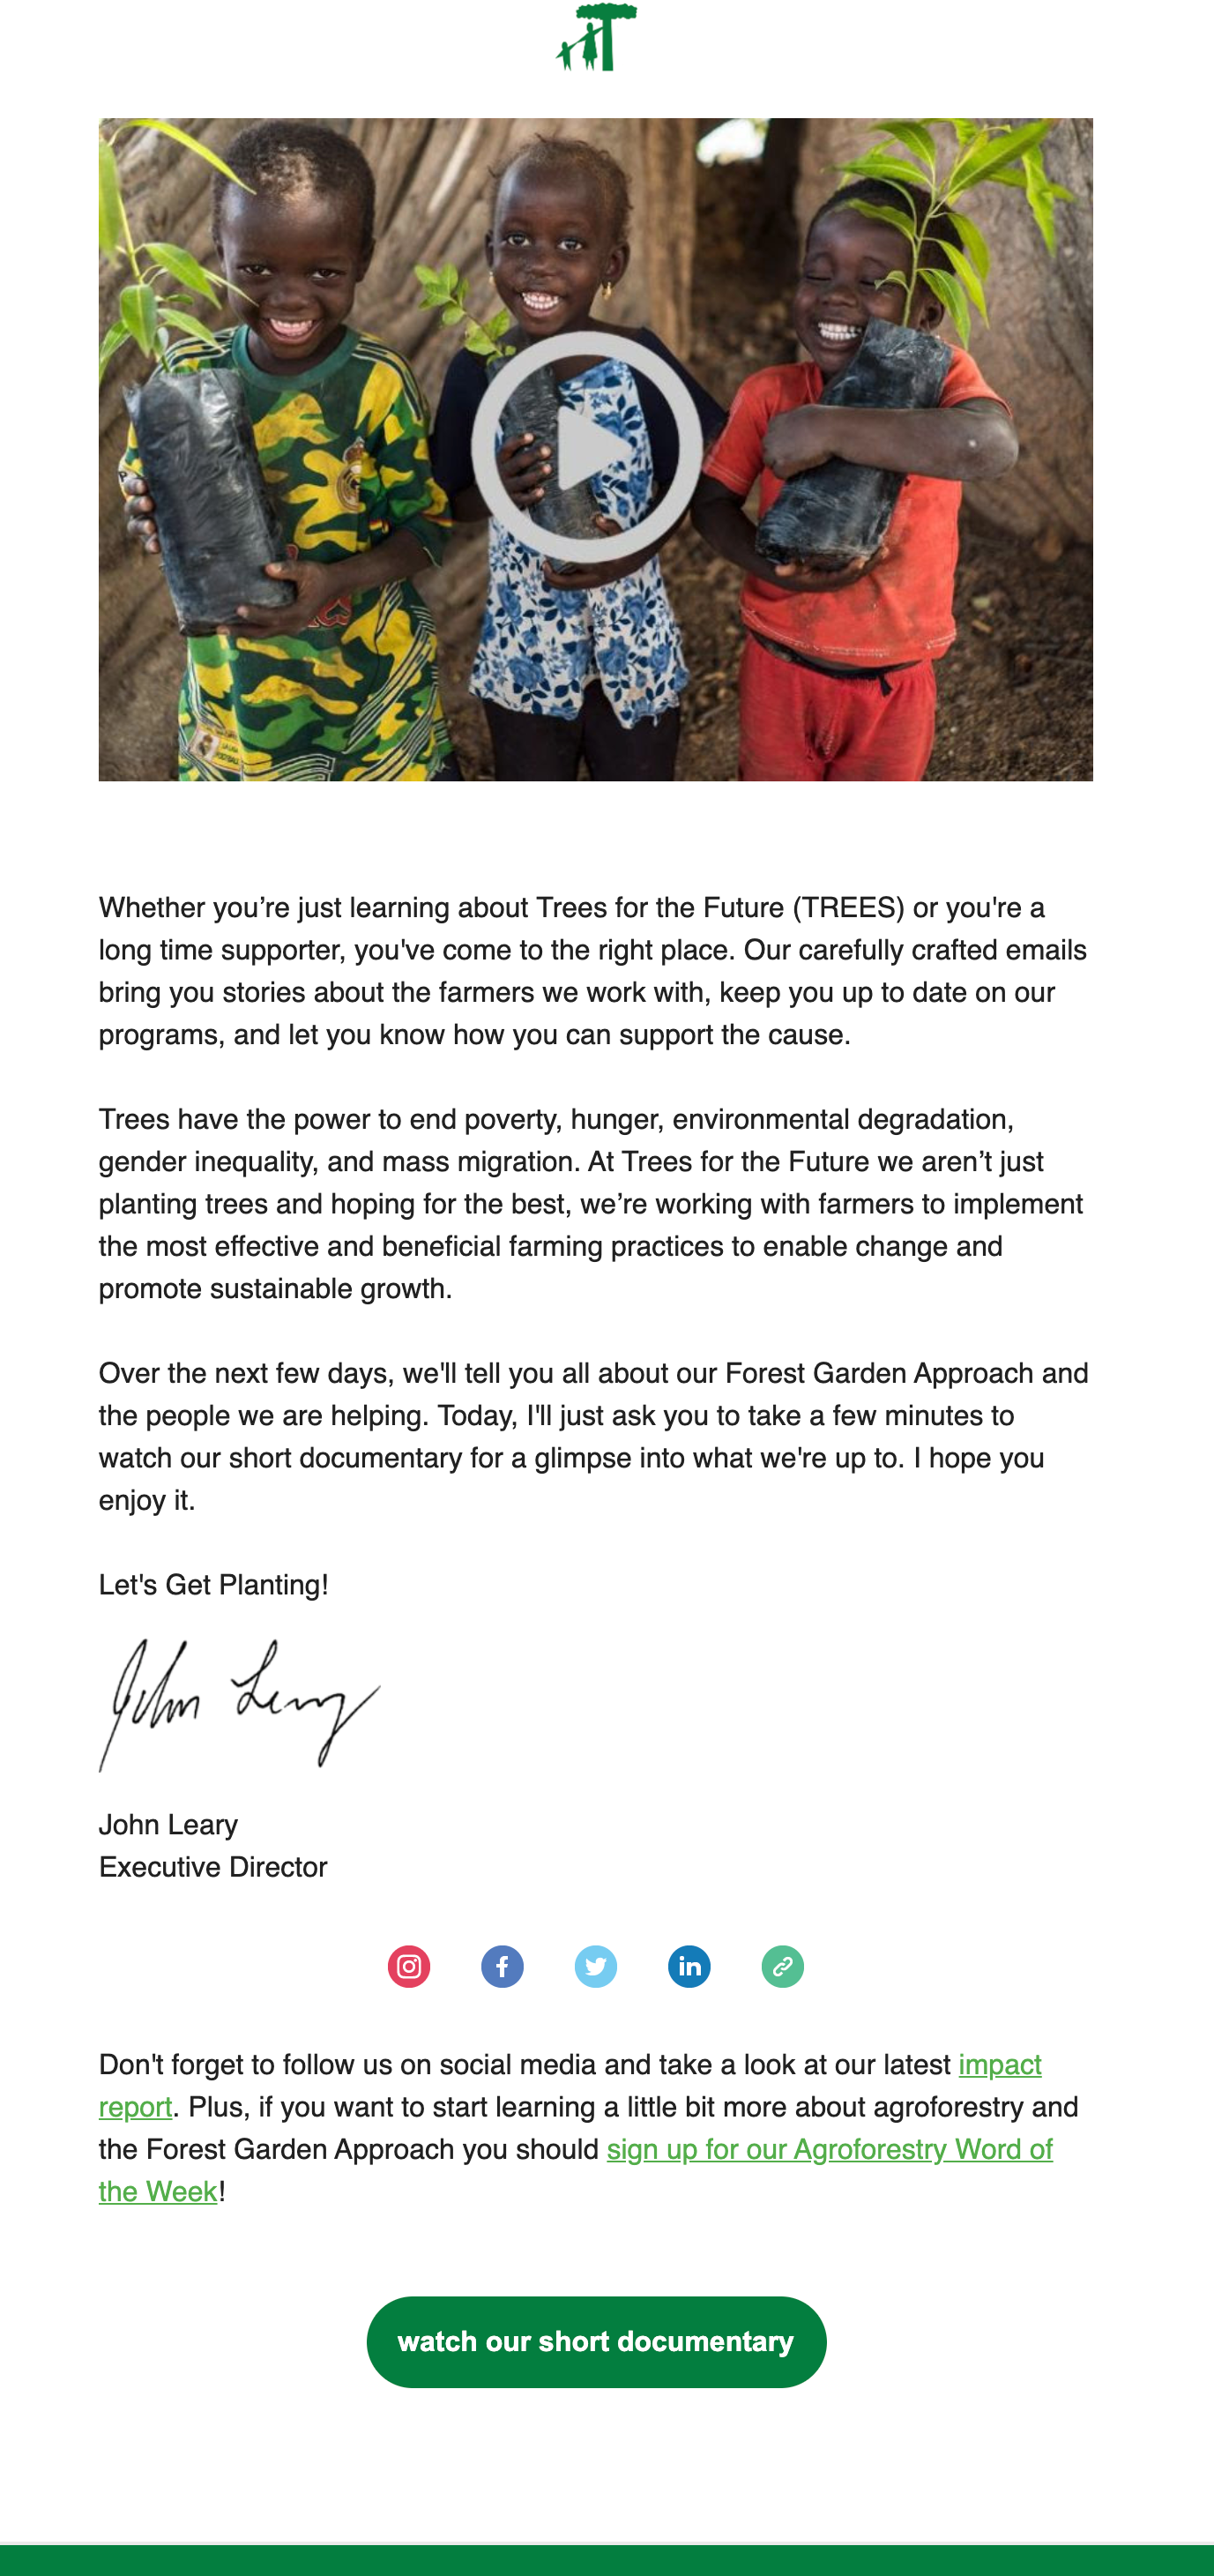 Image of the Trees for the Future's welcome email. The email includes a link to the short documentary on how the nonprofit is helping people and promoting sustainable growth.